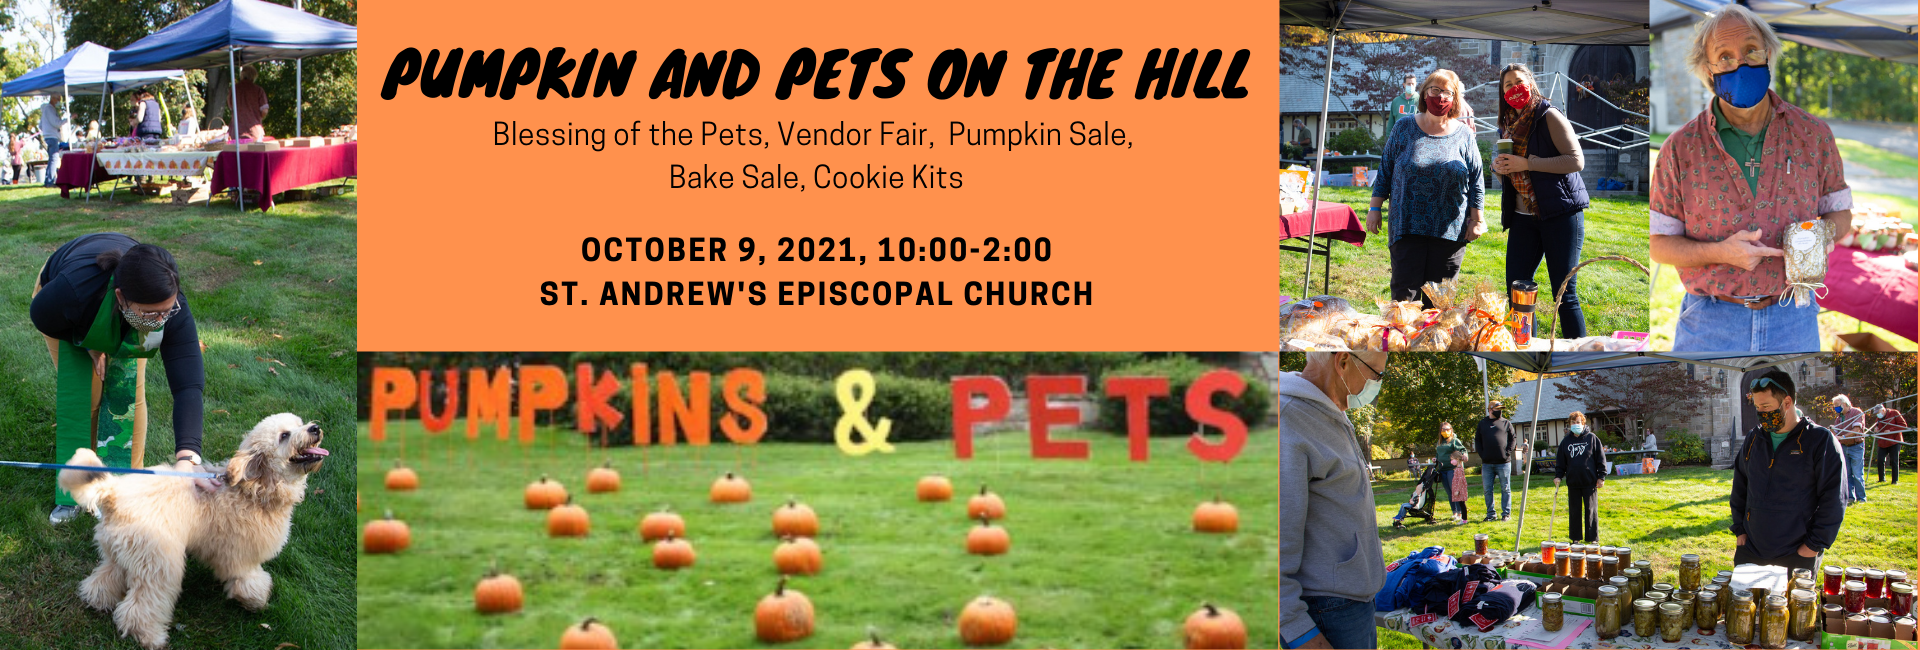 Pumpkin and Pets on the Hill